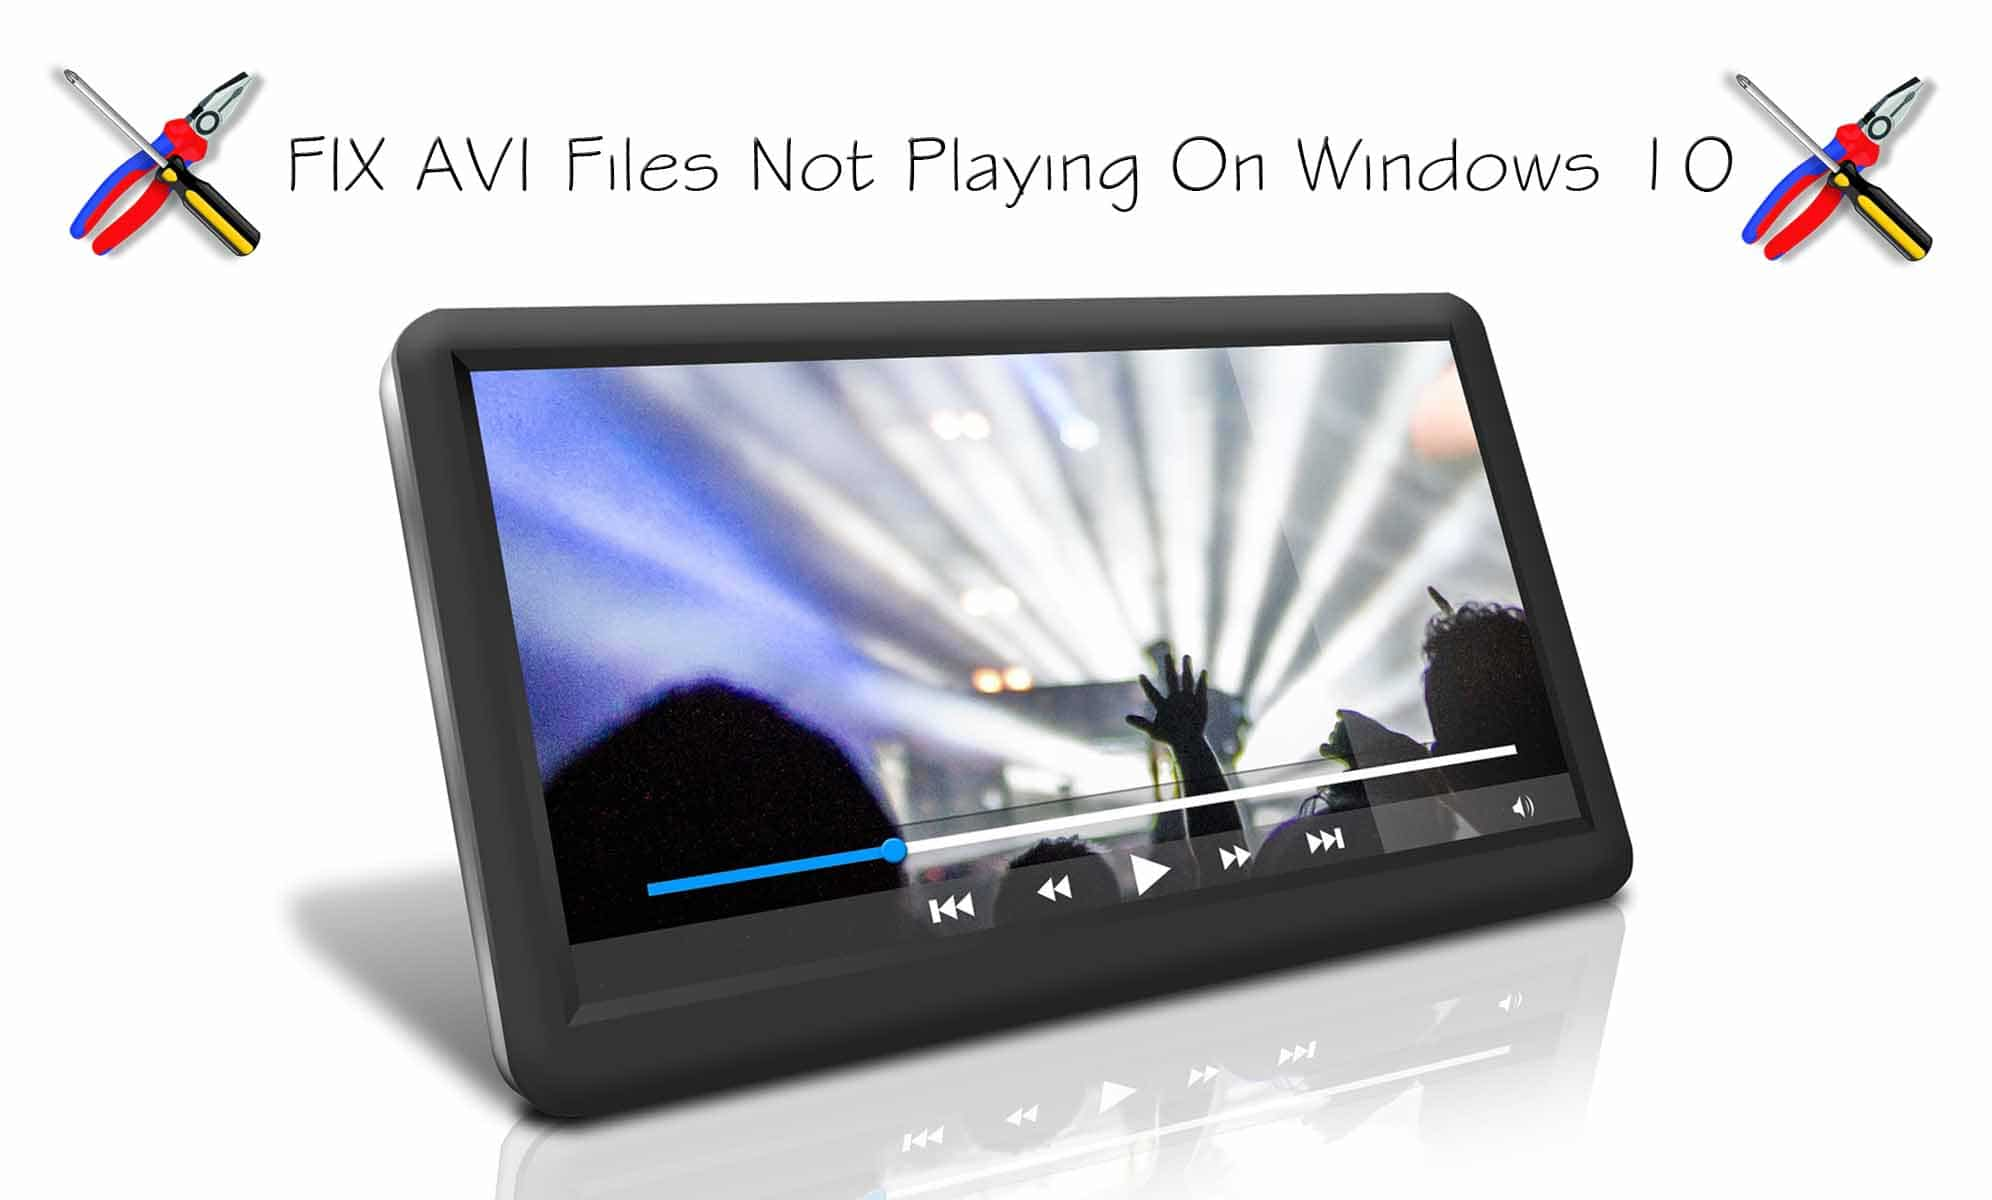 How to Play AVI Files On Windows 10